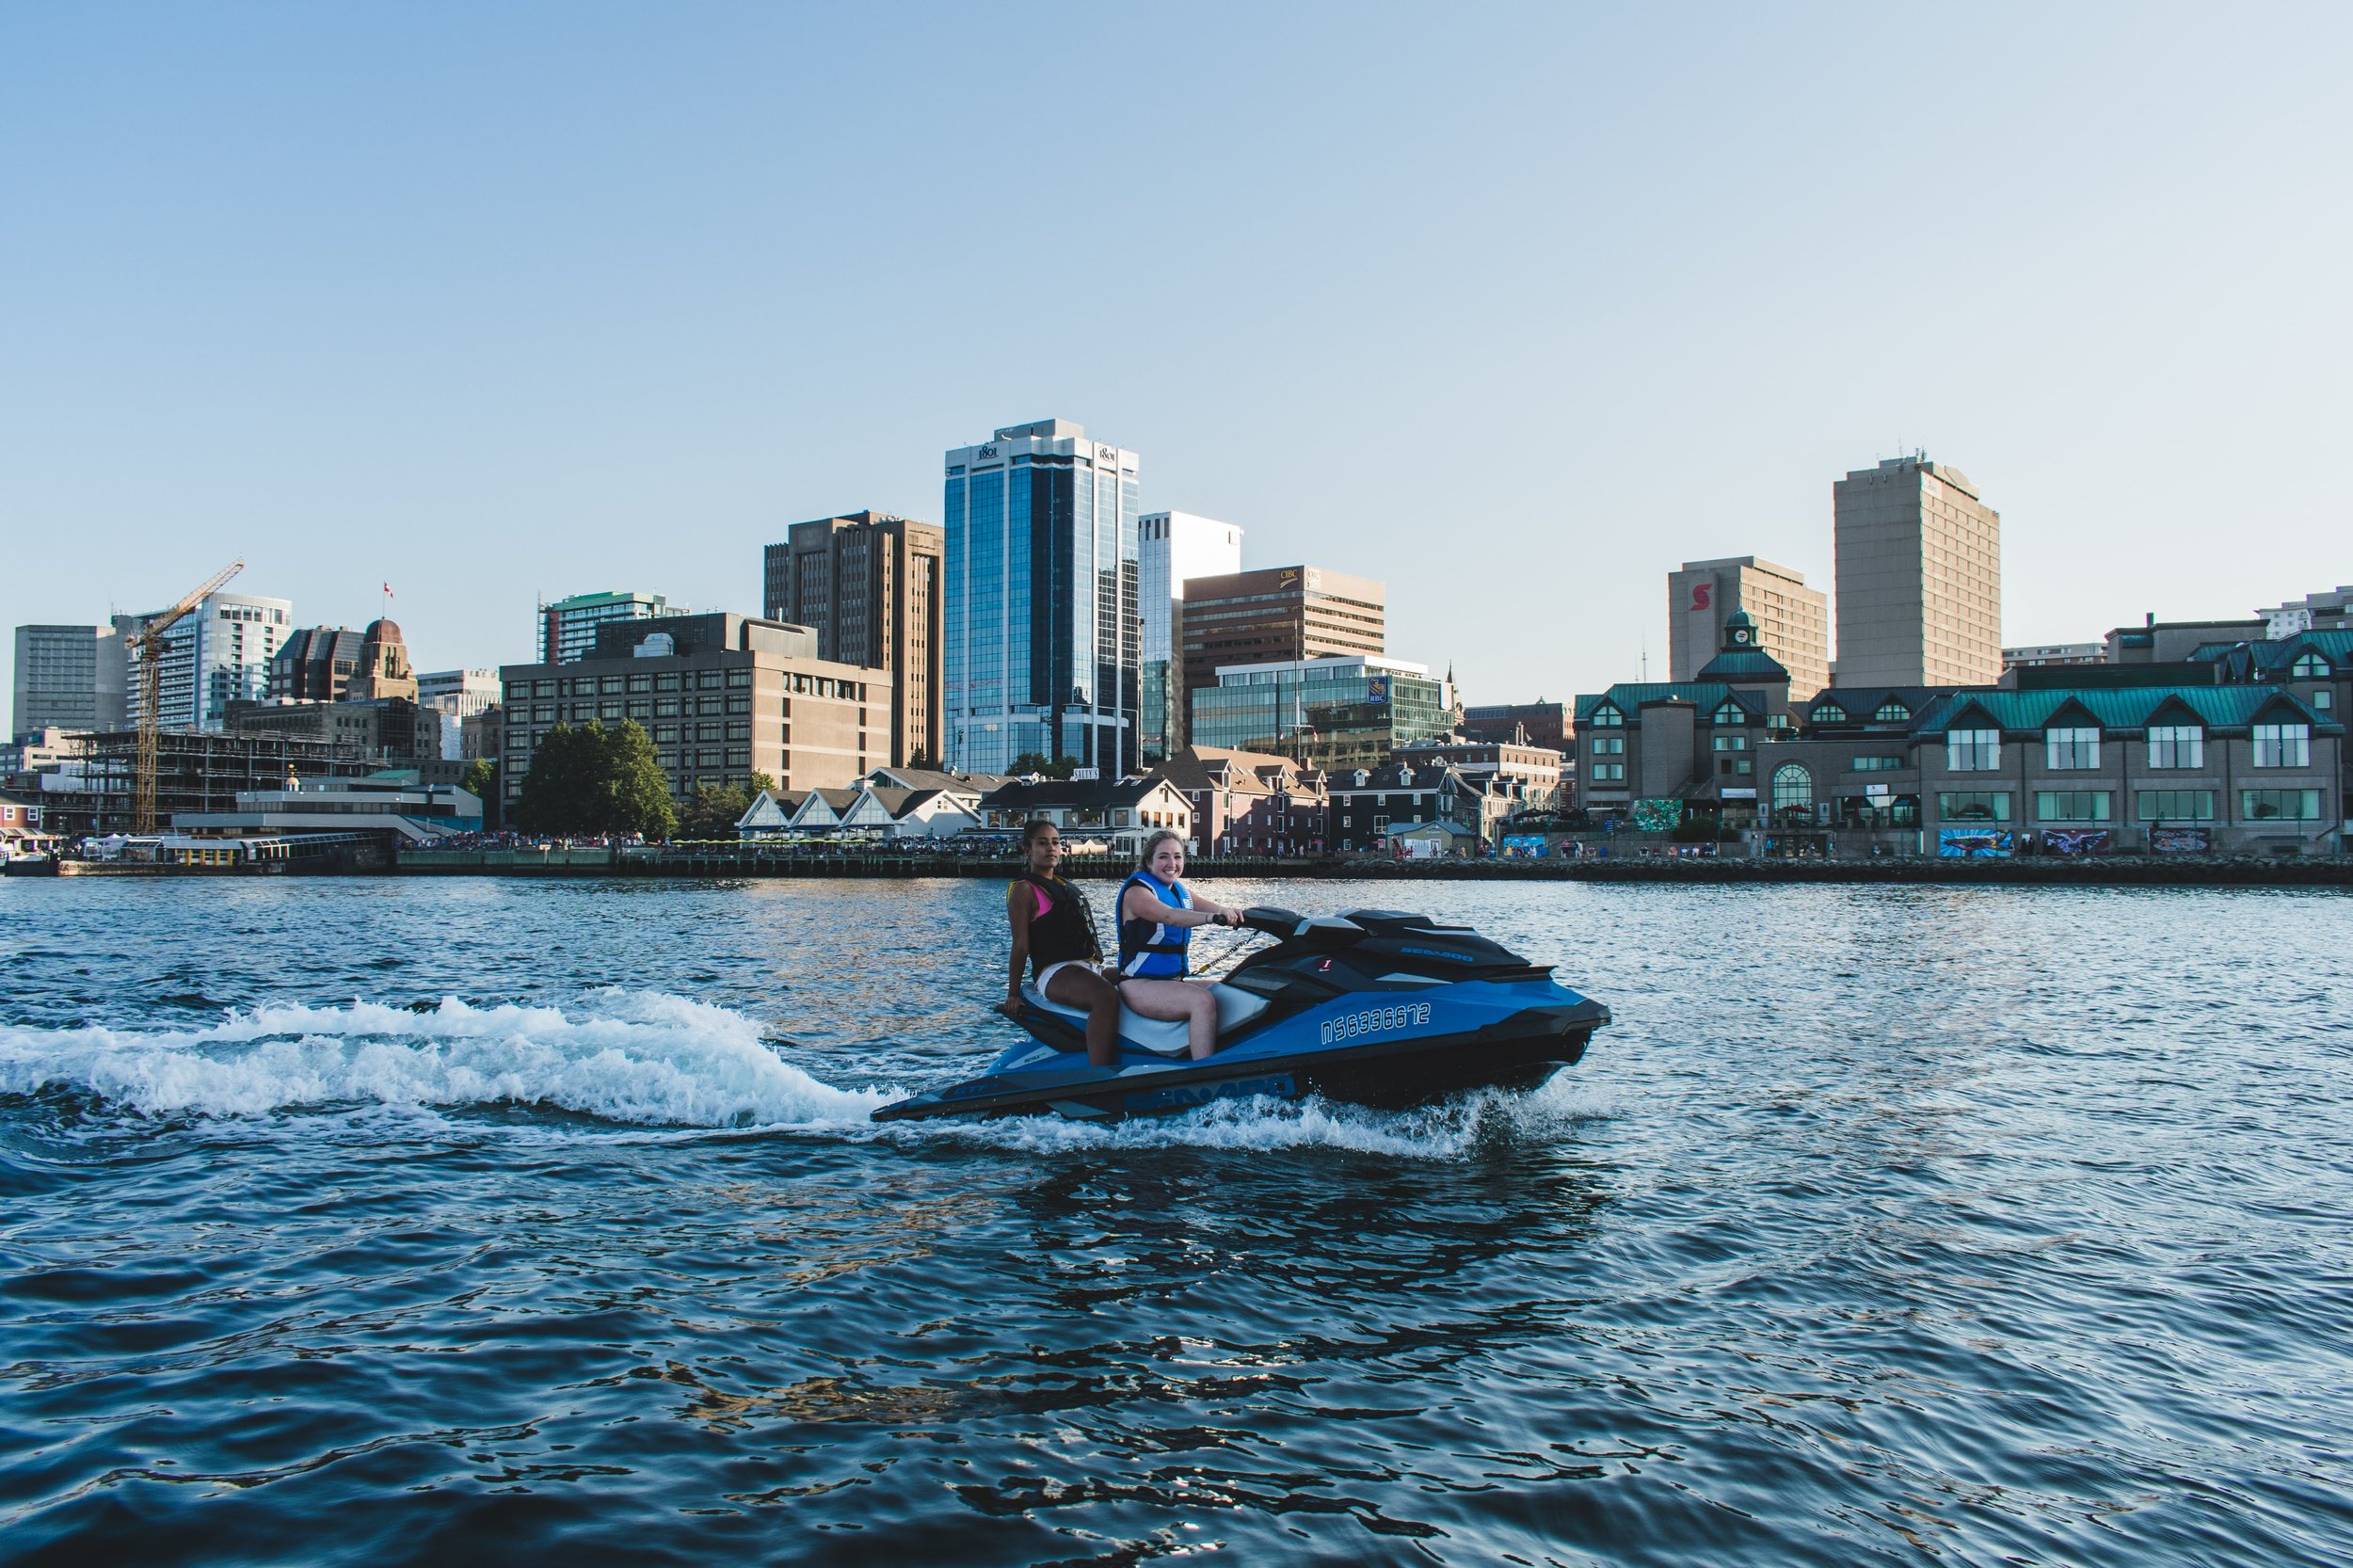 Want to tour the Halifax harbour at your own pace? - Rent a Sea-Doo, and take your own scenic tour of Georges Island, McNabs Island, the Halifax Waterfront and the Bedford Basin, or just zip through the waves. It's up to you! The harbour is YOURS!